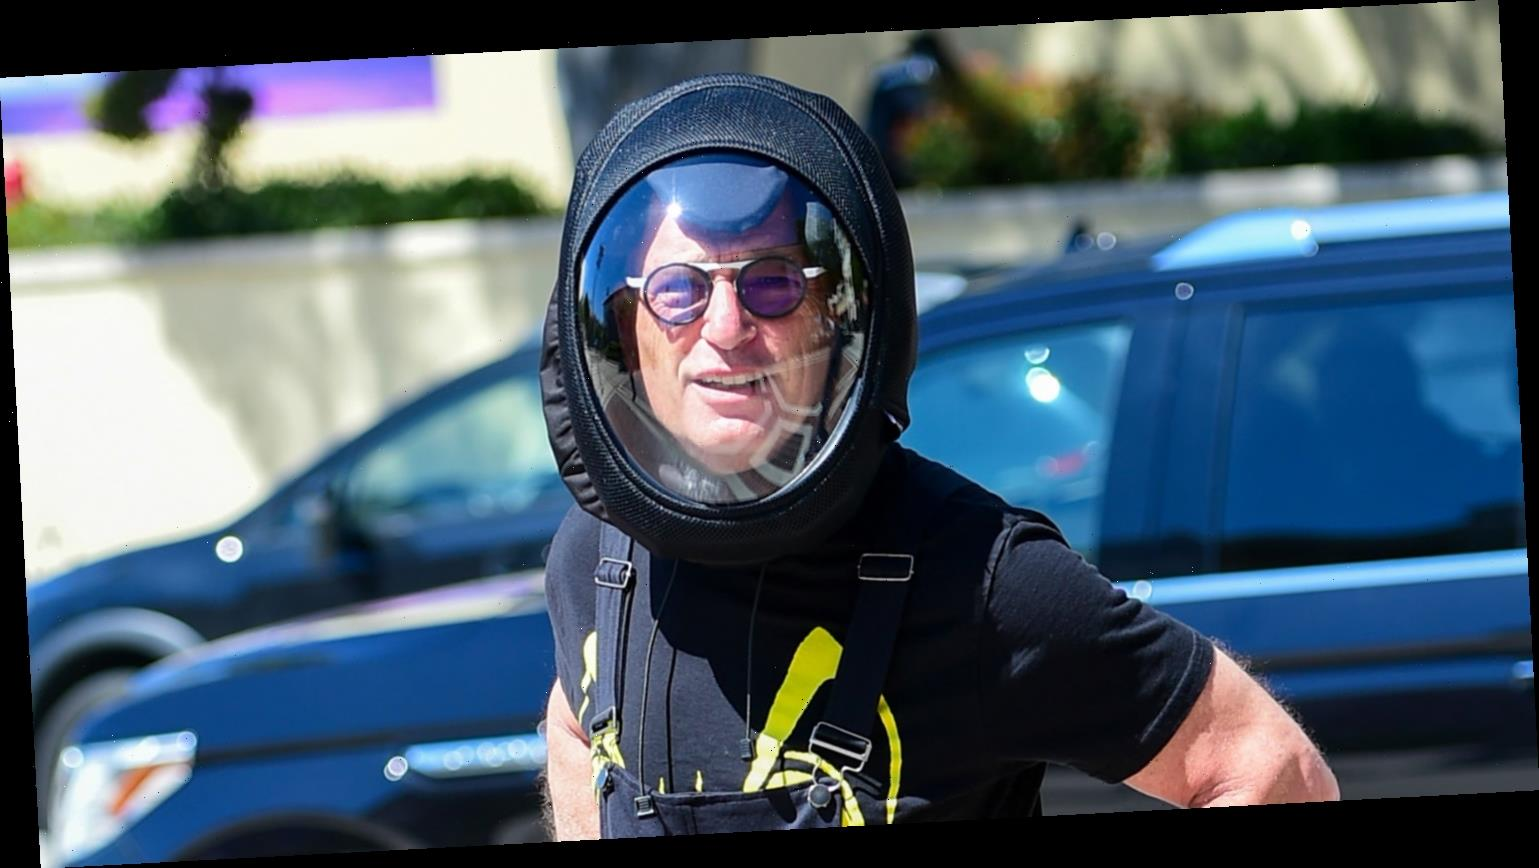 Howie Mandel Protects Himself from COVID-19 in Astronaut Helmet While Out in L.A.